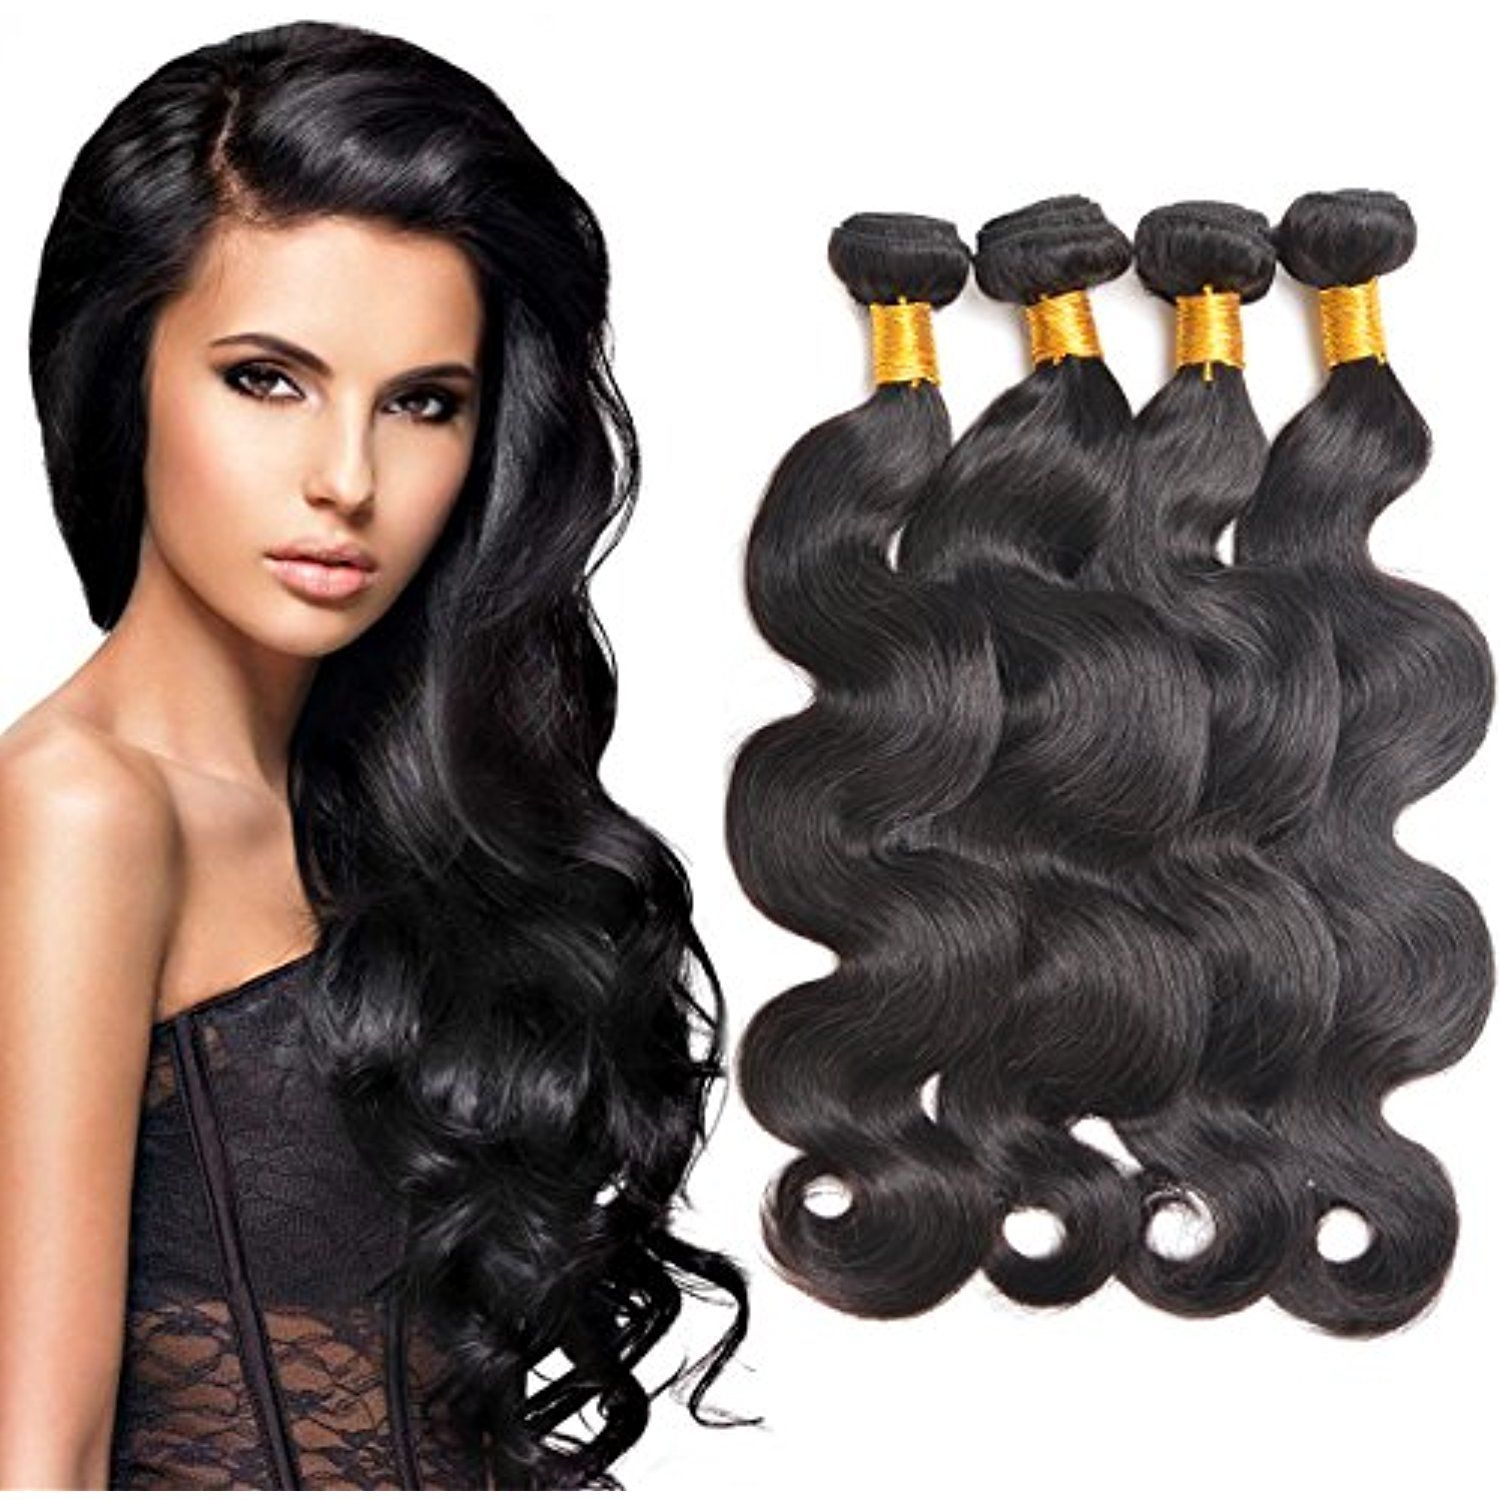 Body wave brazilian hair human hair weave grade a virgin hair